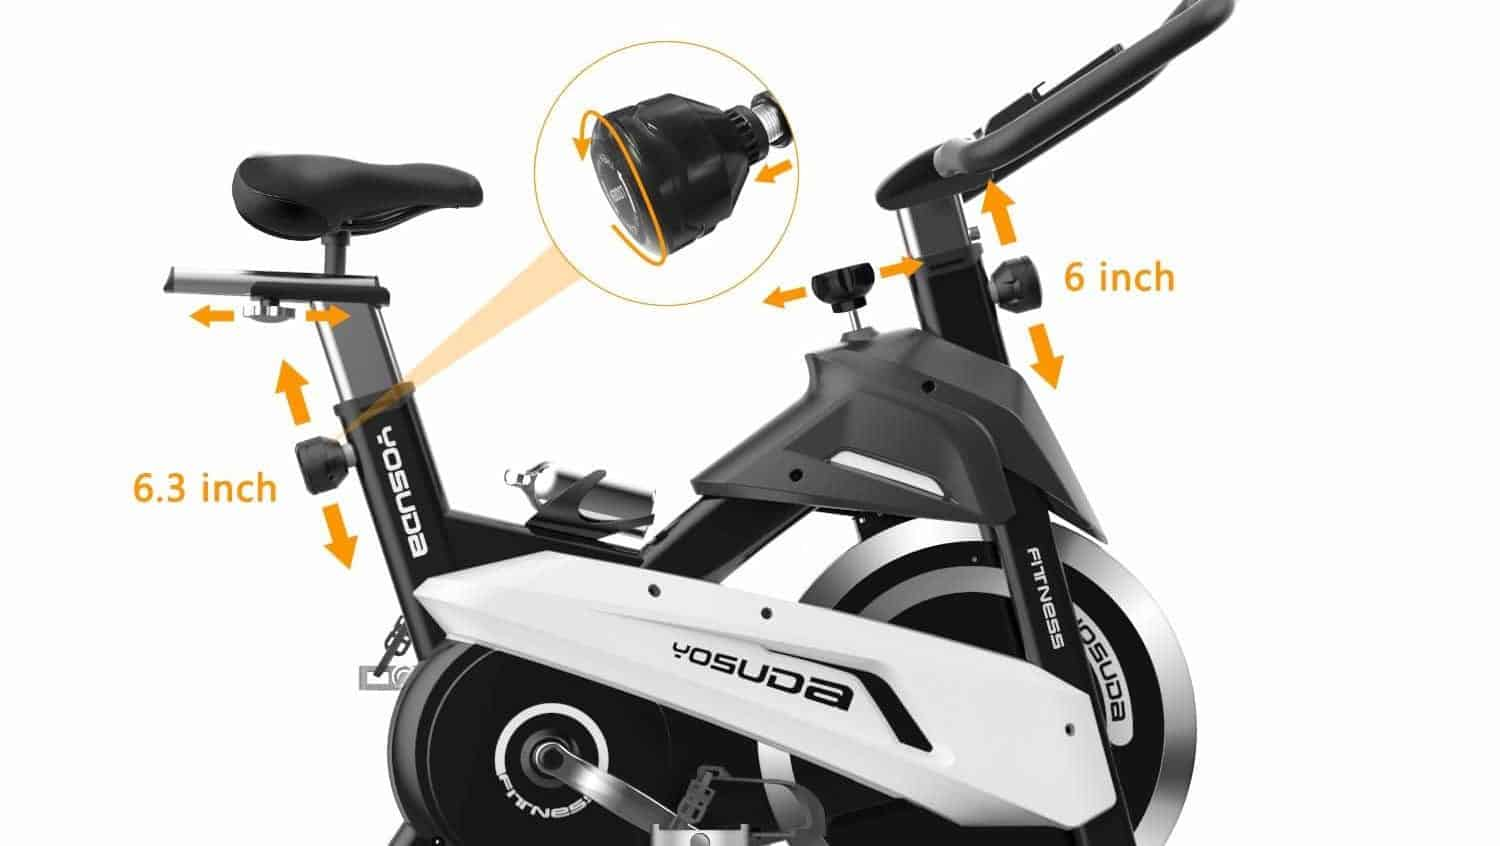 YOSUDA Indoor Exercise Cycling Bike L-007 Review